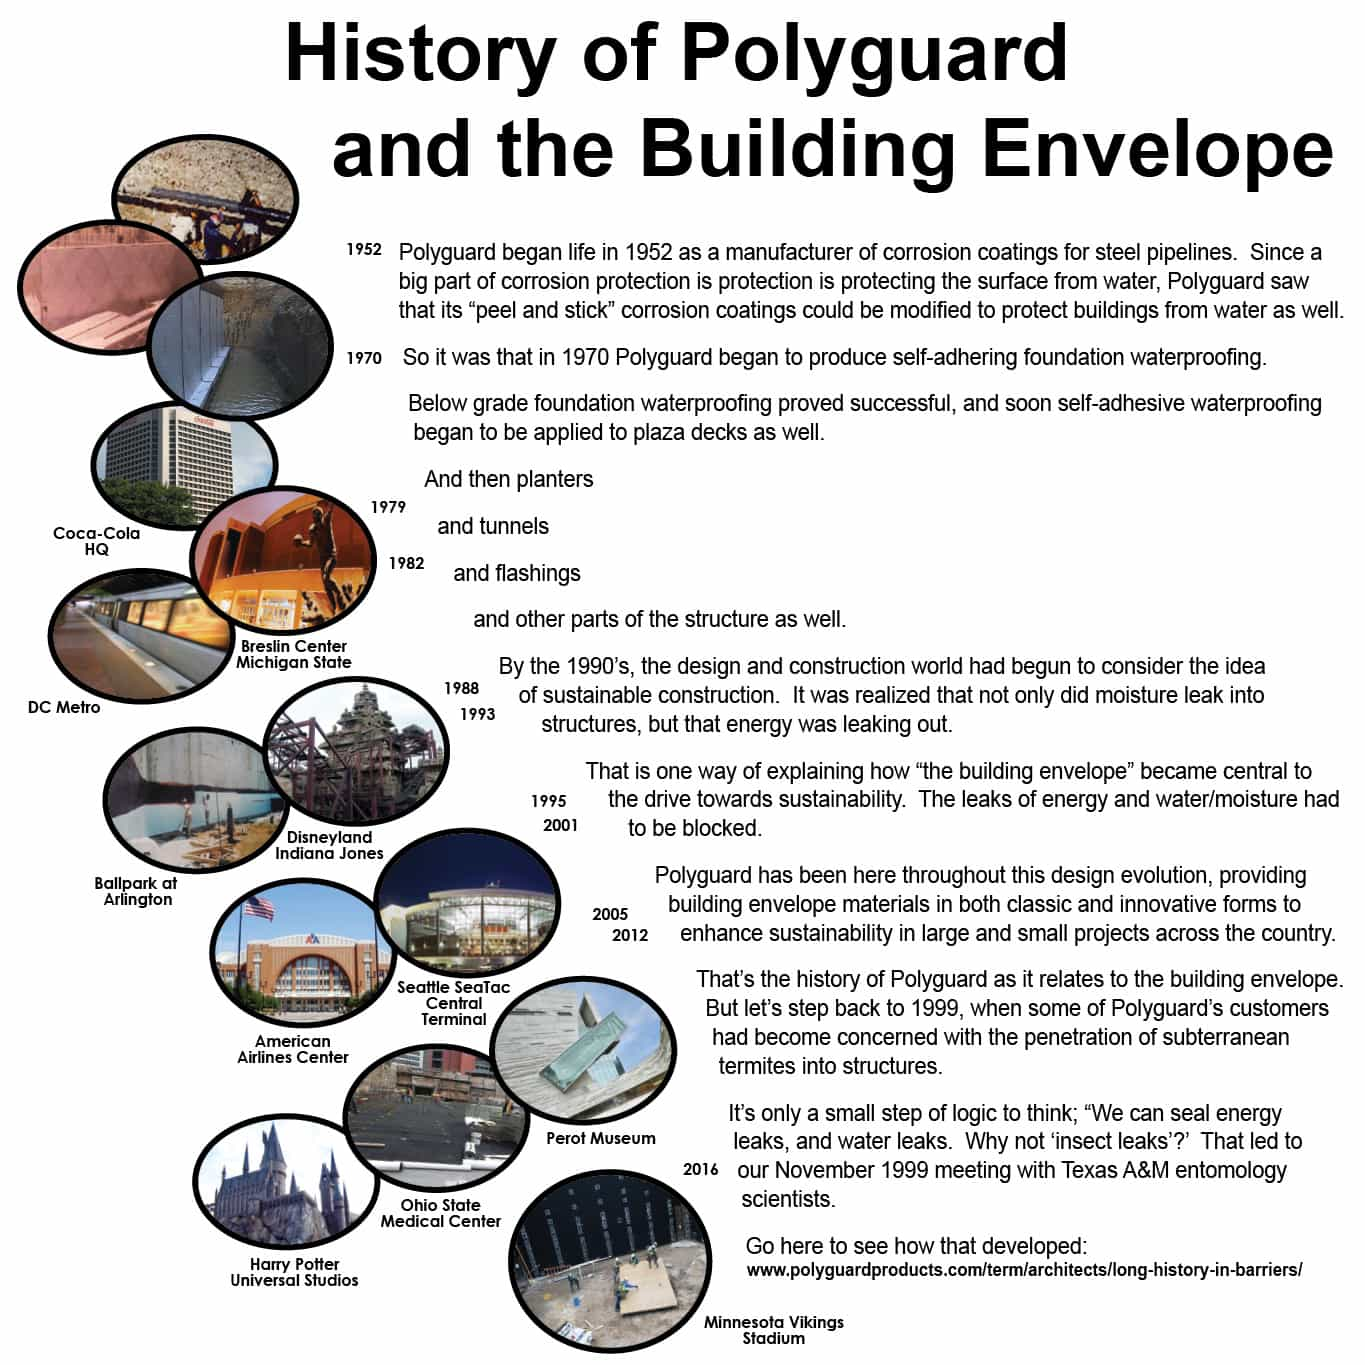 History of Polyguard and the Building Envelope